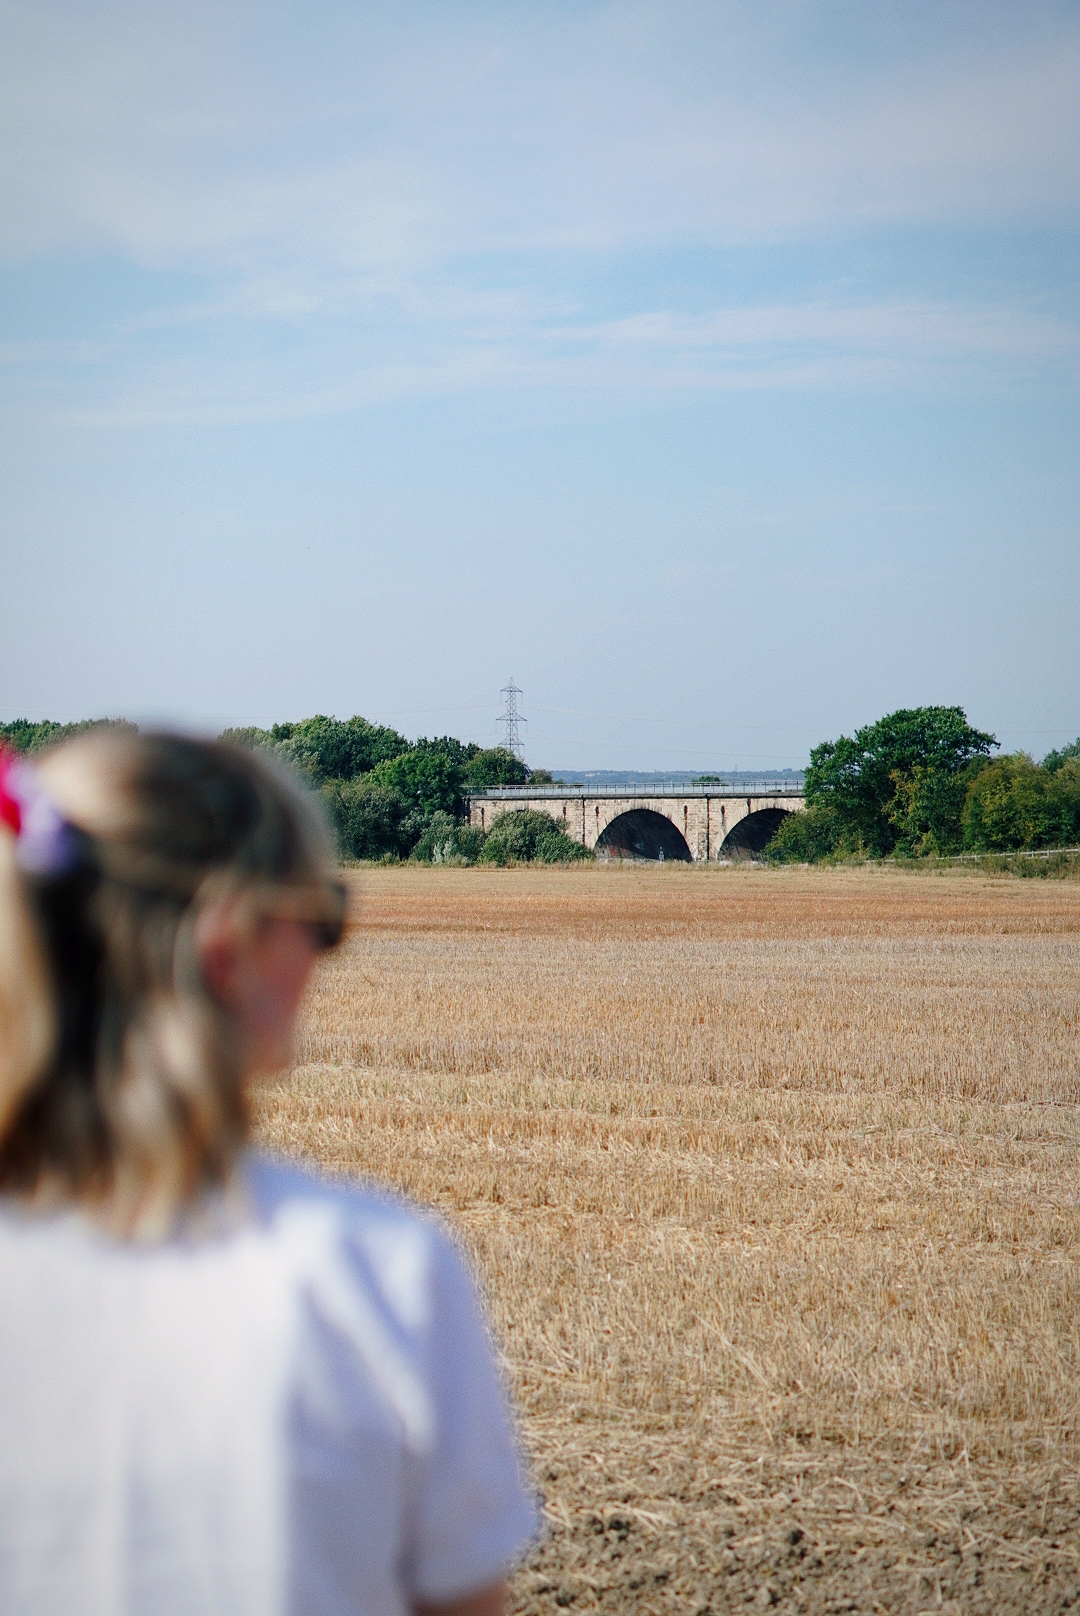 Amy is standing looking out into a wheat field, she is blurry and the field is in focus. In the distance is a bridge.